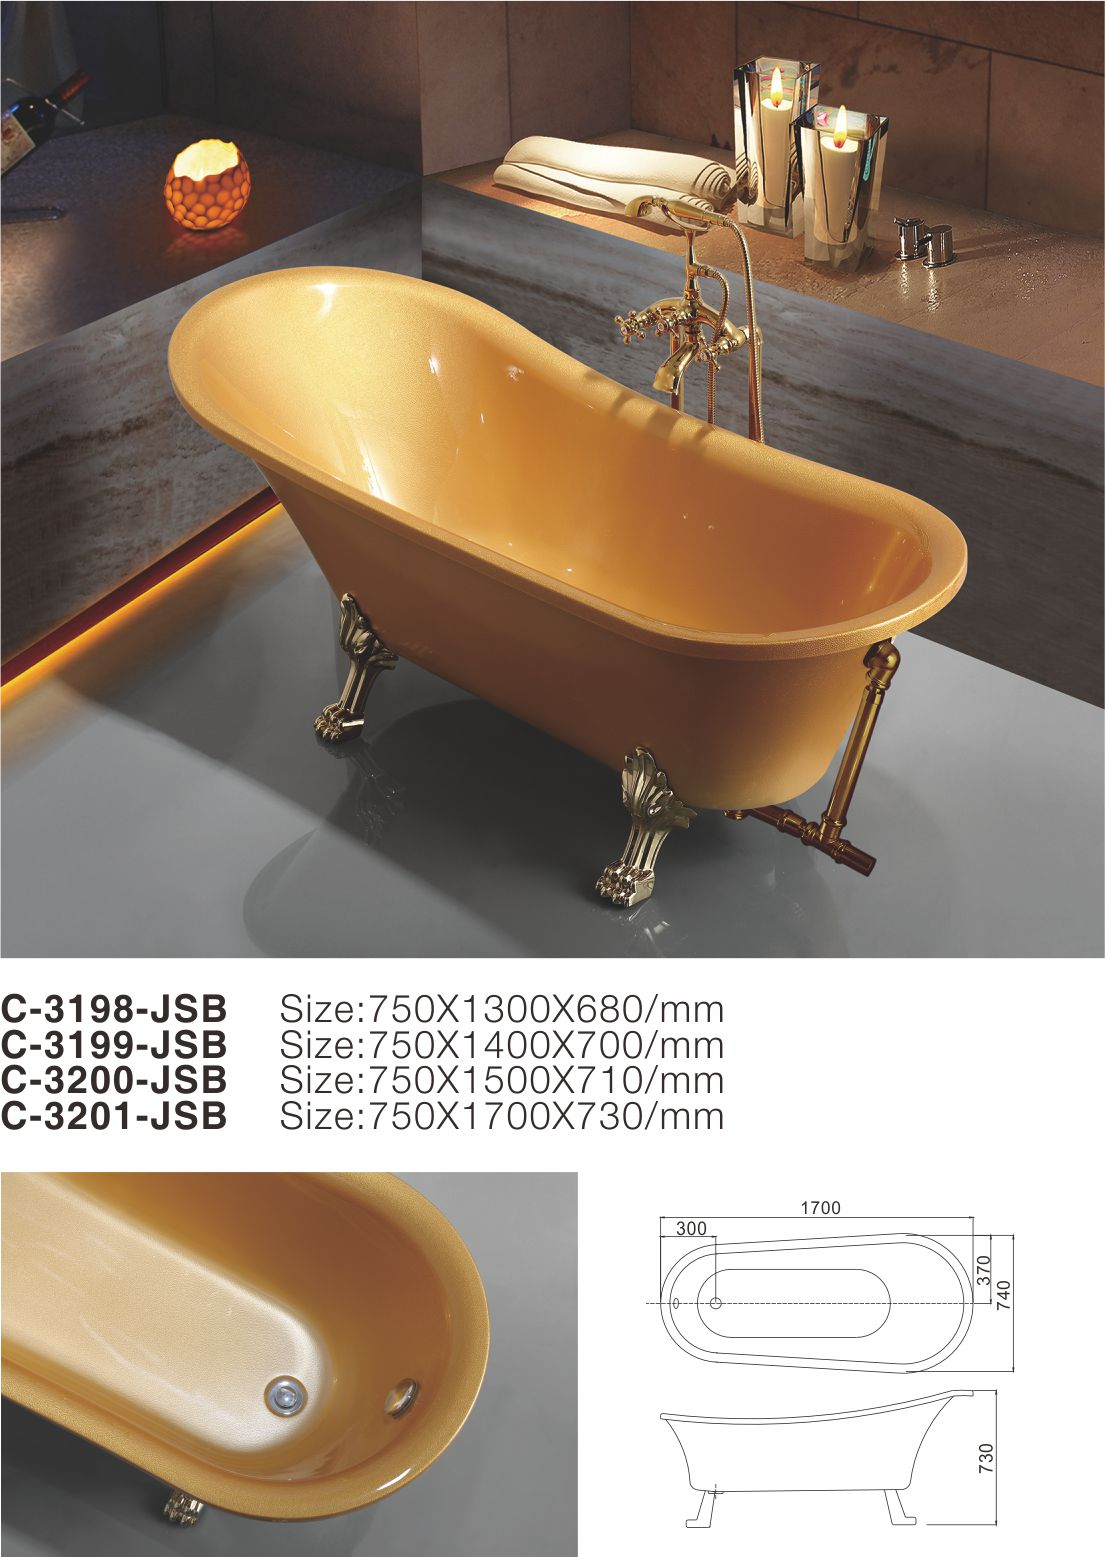 C-3198-JSB_2017 New Charming European Style Golden Oval Acrylic Free Standing Soaking Hot Tub-1.jpg